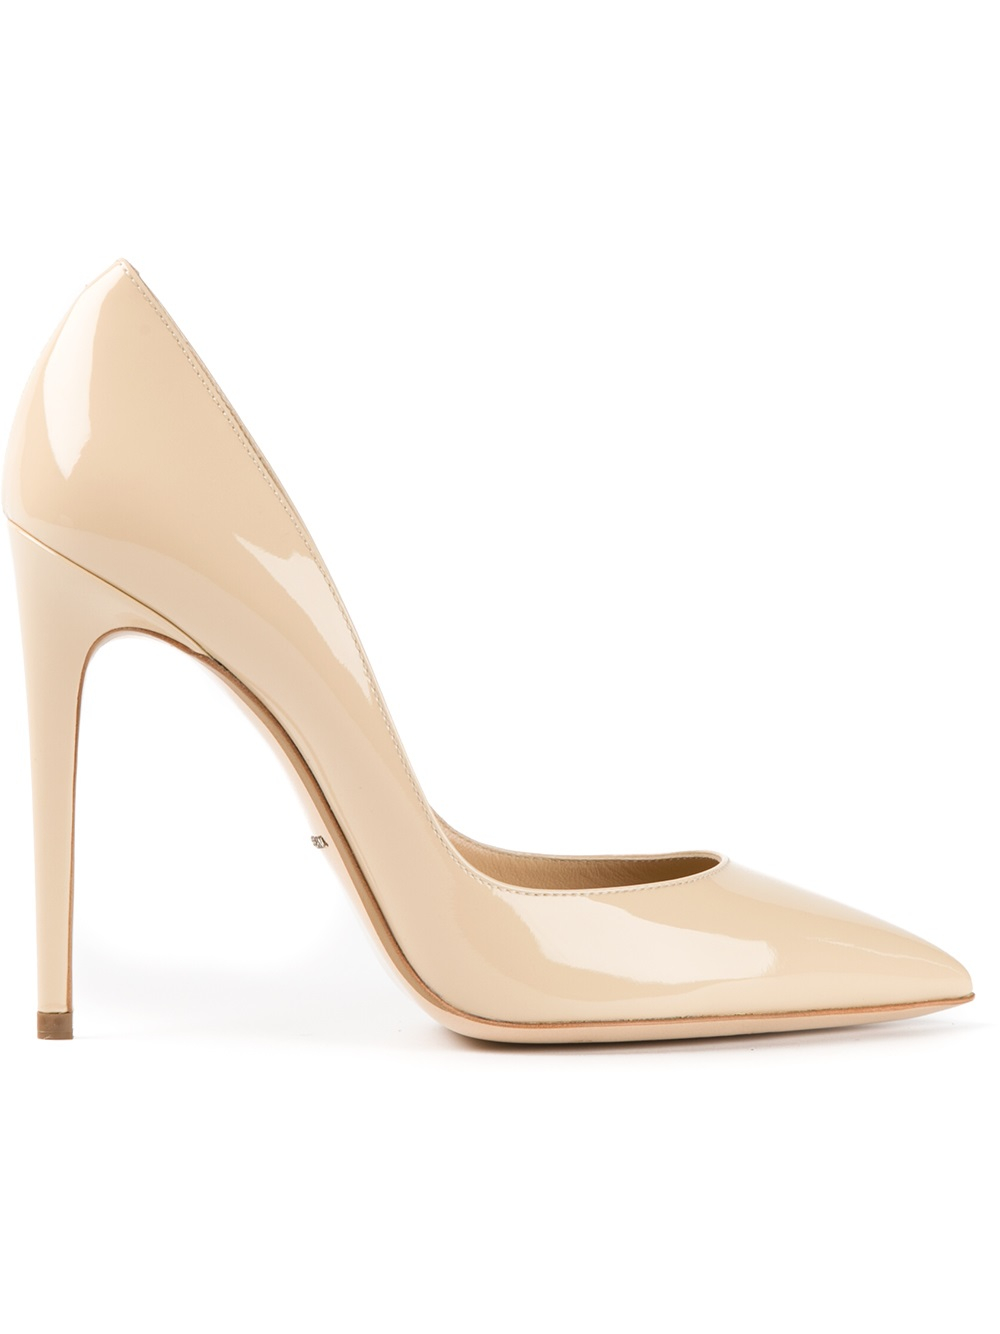 pointed toe pumps - Nude & Neutrals Dolce & Gabbana Clearance Many Kinds Of Limited Edition ETNq3yC